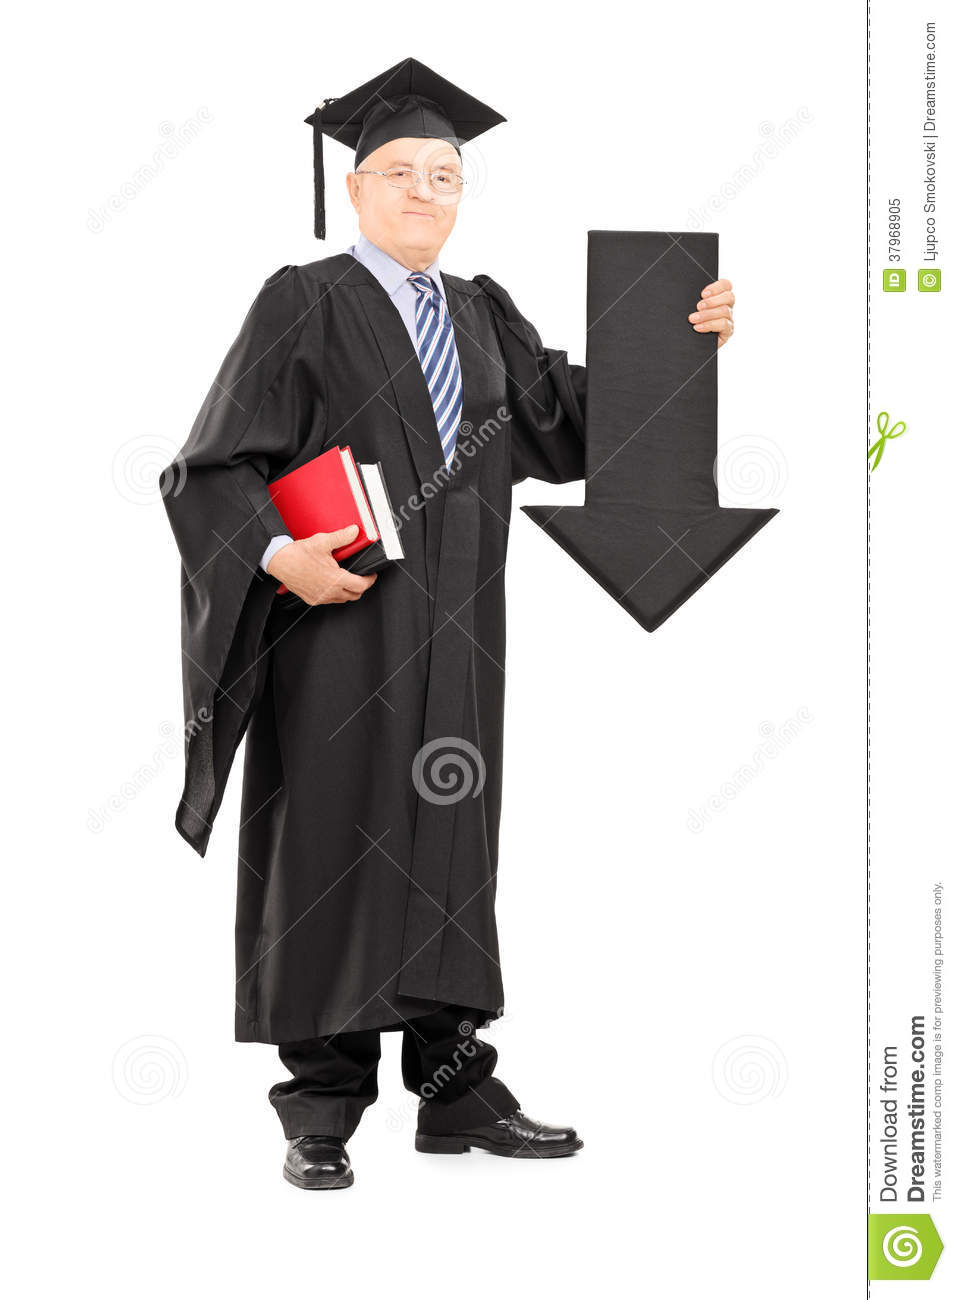 Mature Man In Graduation Gown Holding Big Arrow Pointing Down Stock ...